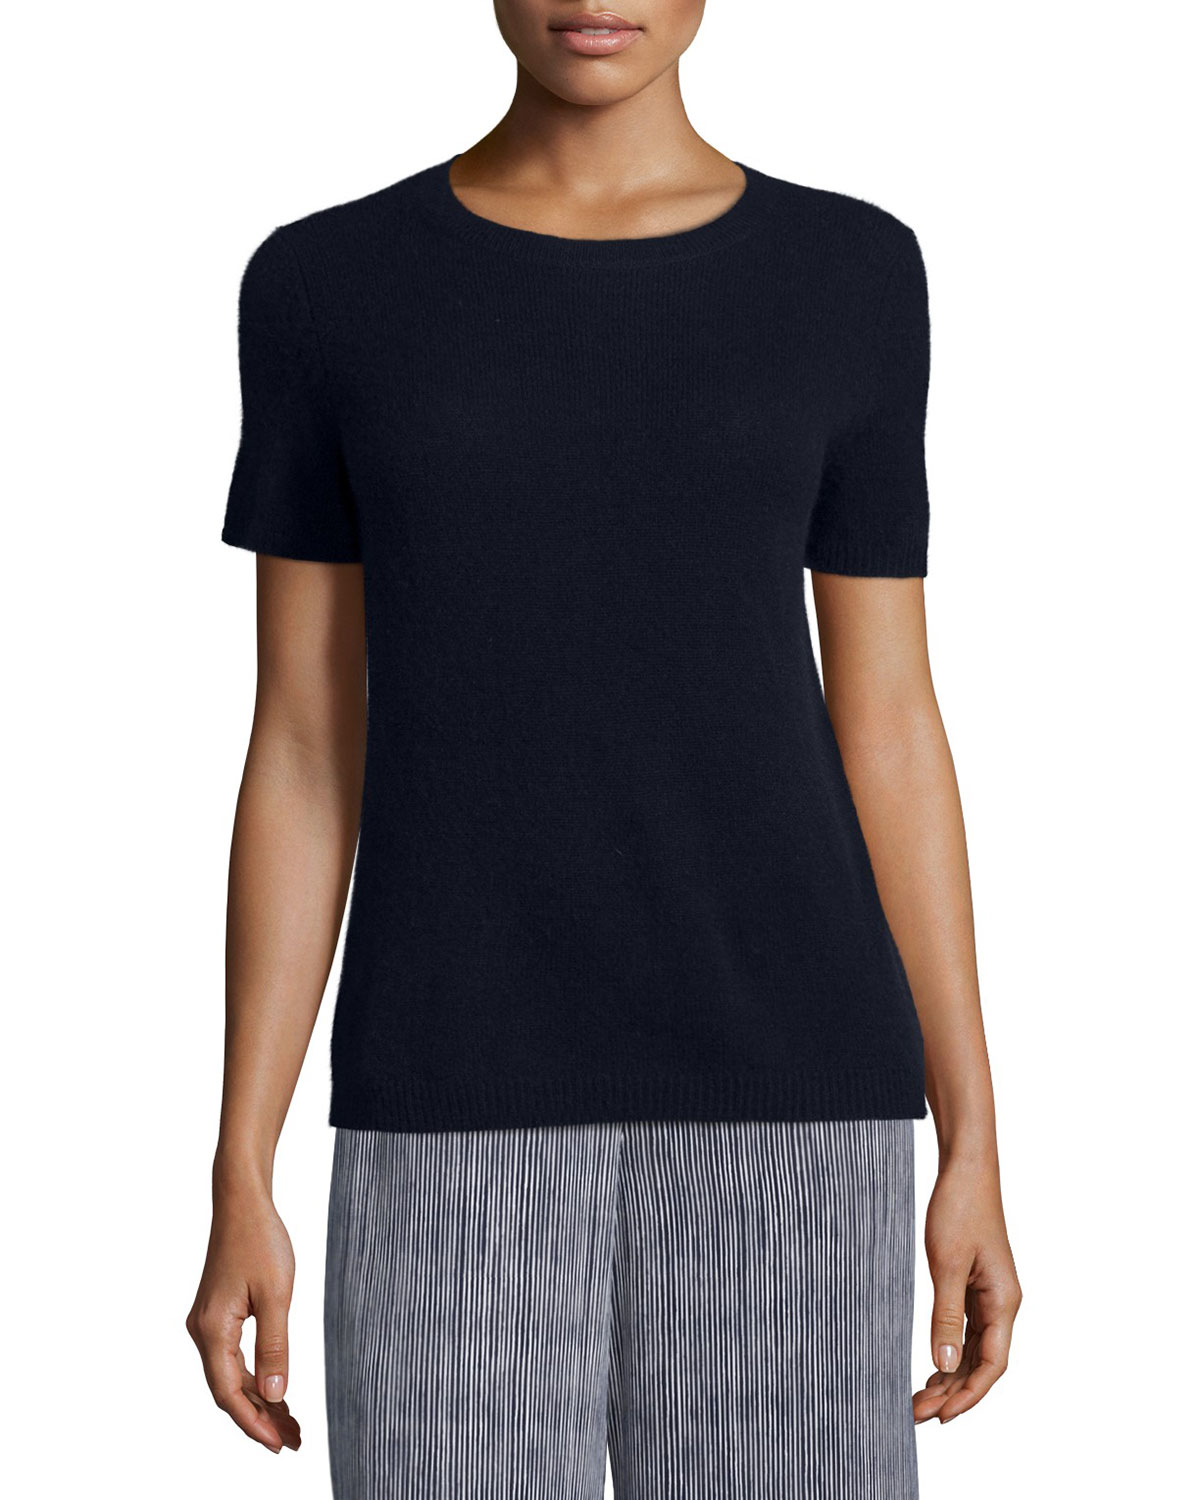 Theory Tolleree B Short-sleeve Cashmere Sweater in Black | Lyst